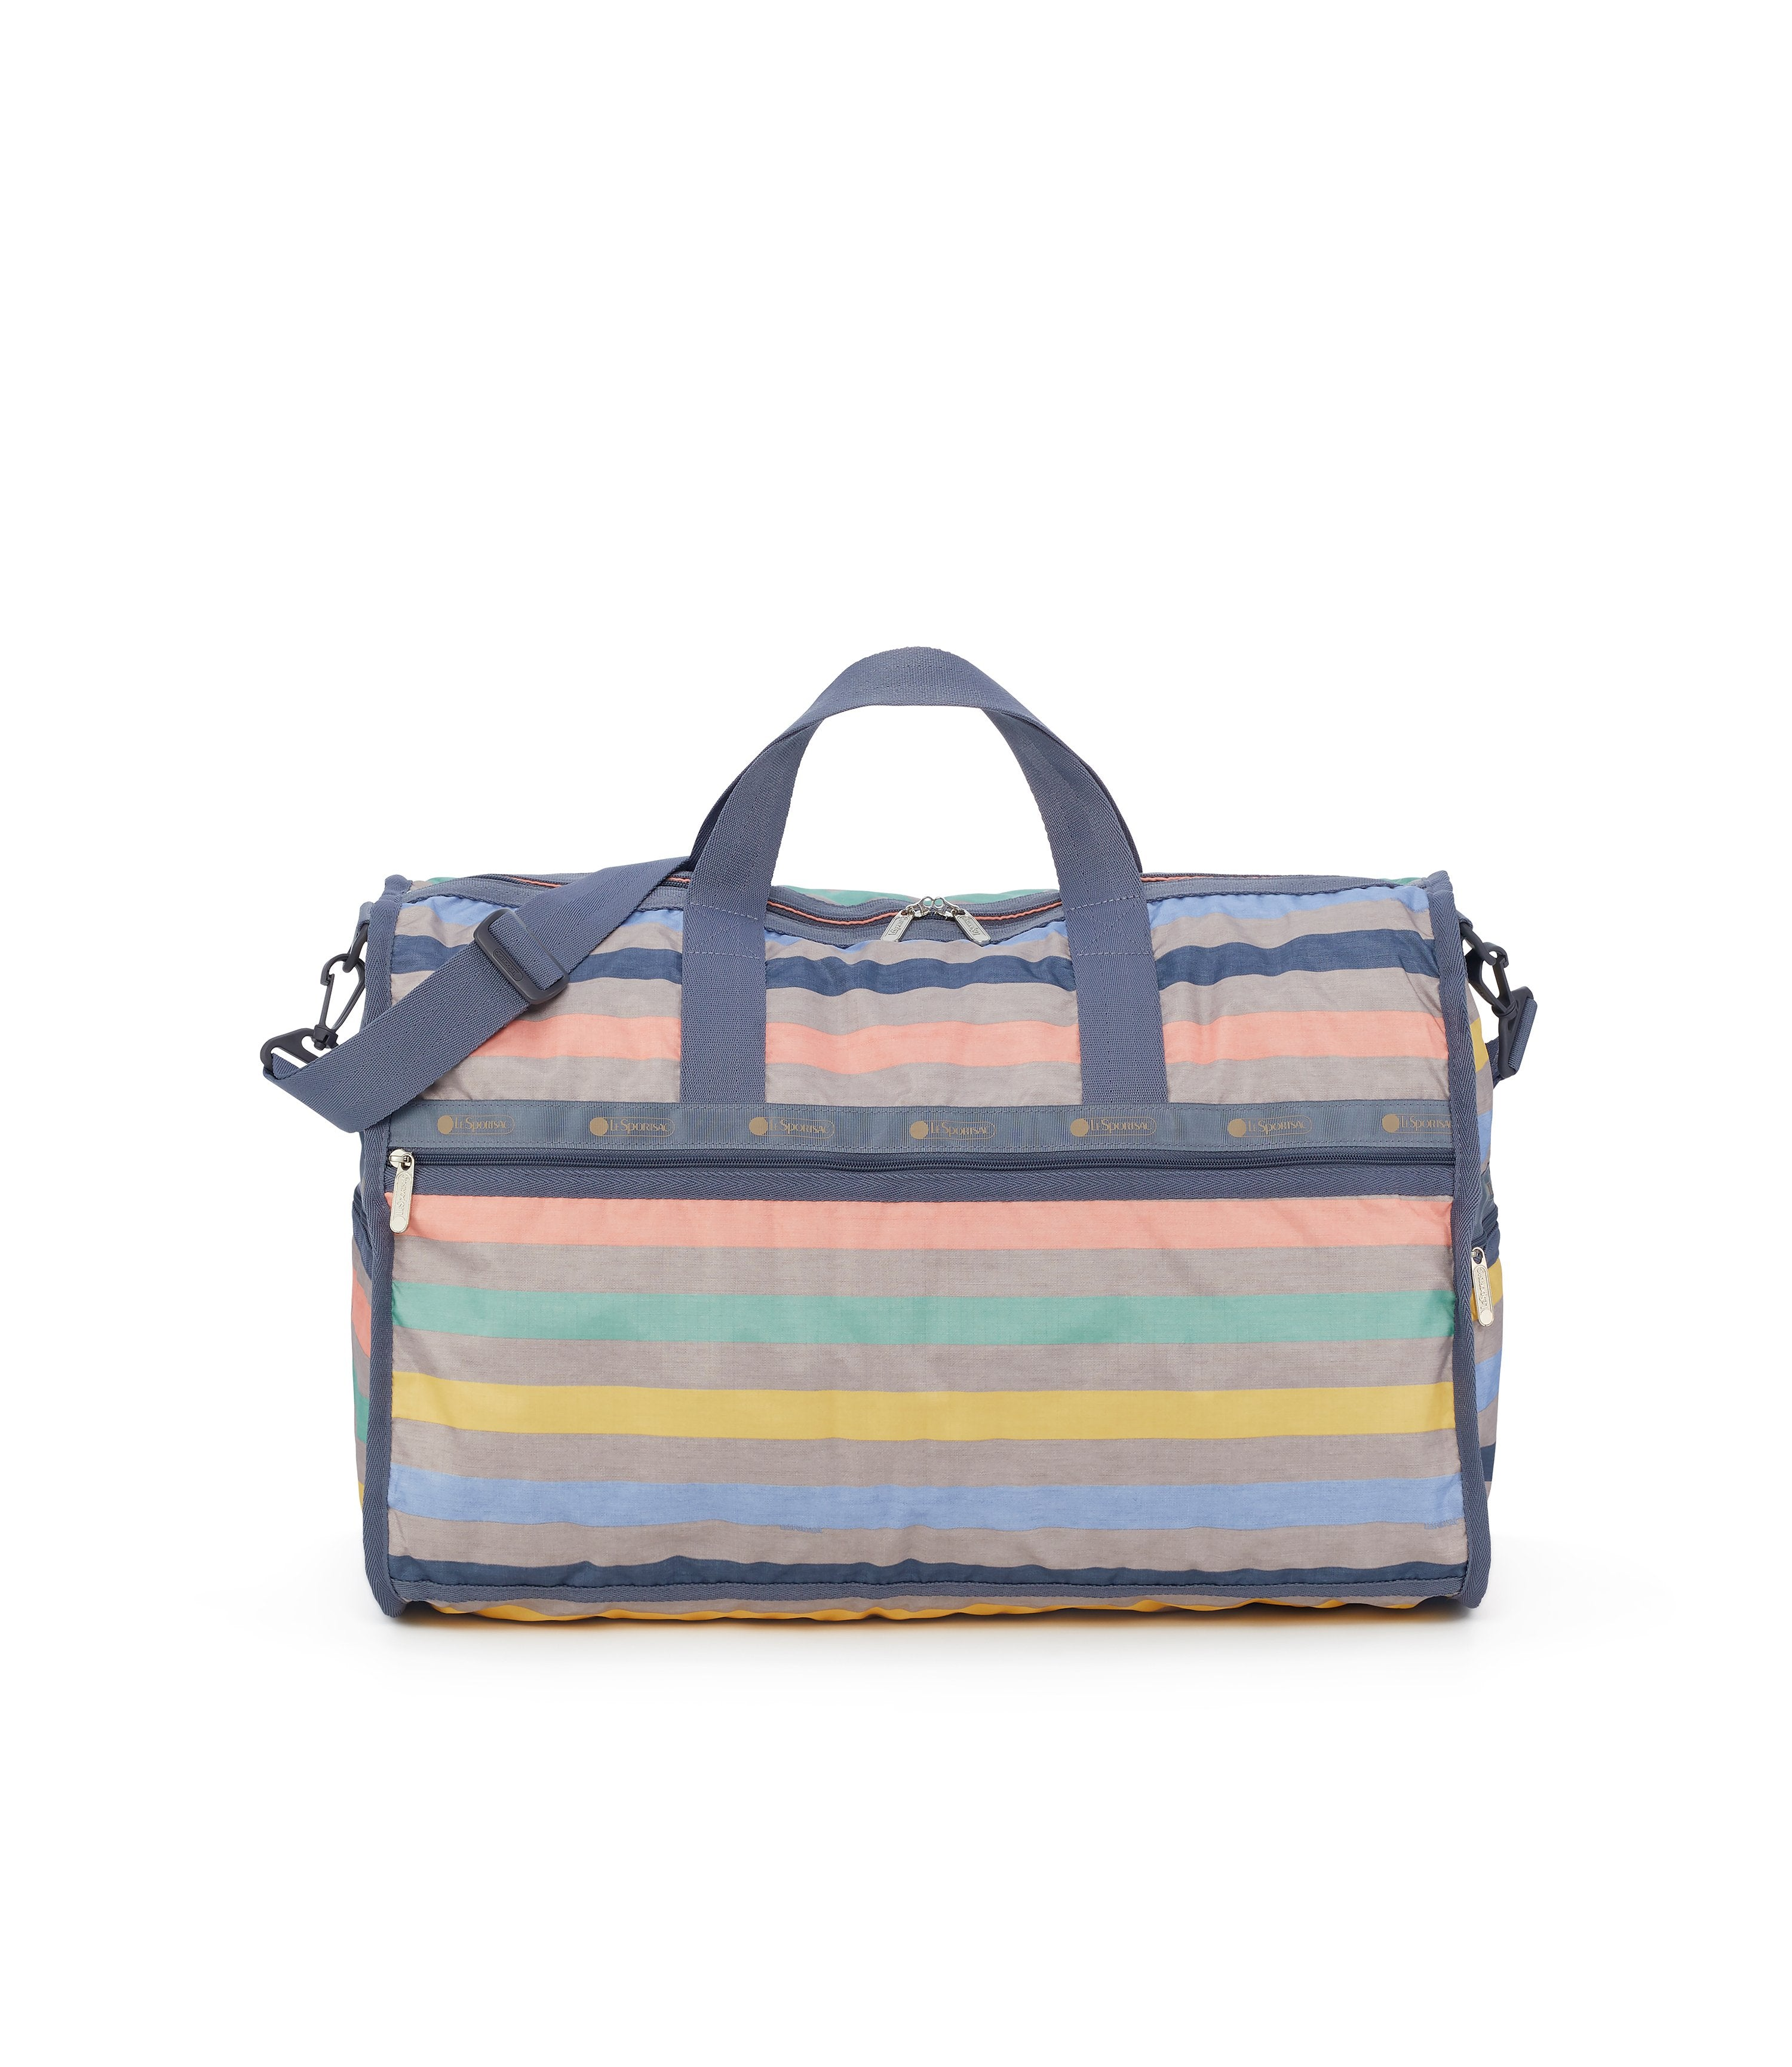 Large Weekender Bags, Duffle Bags, Carry-on, LeSportsac, Gazebo, Pastel stripe print